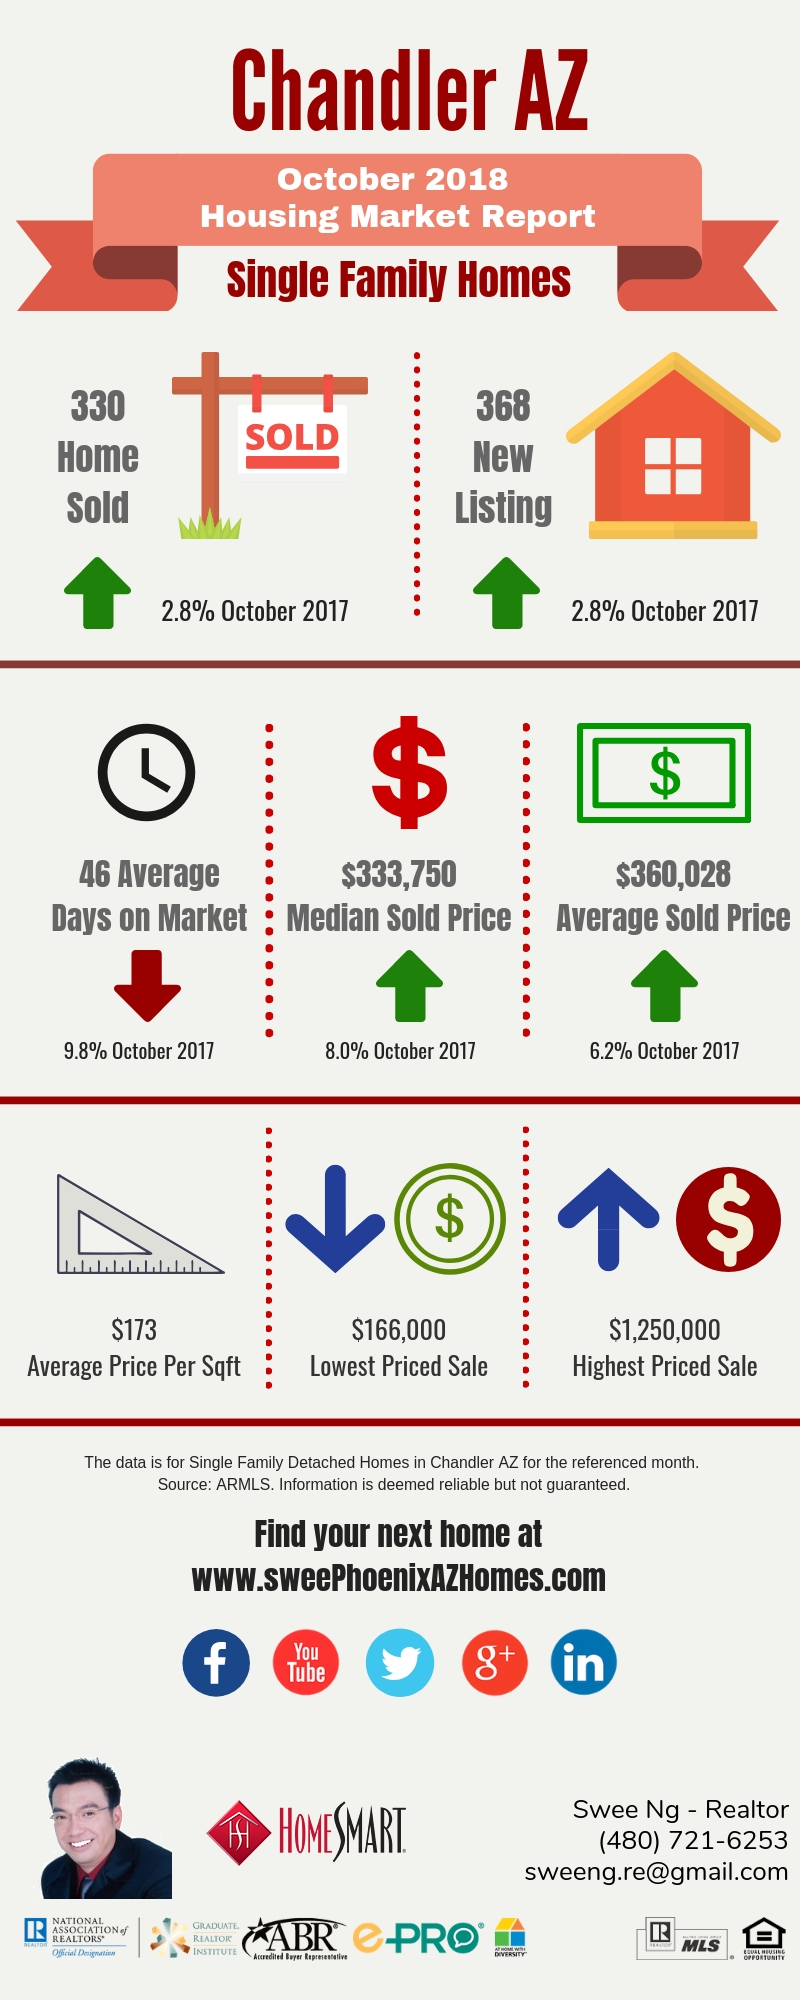 Chandler AZ Housing Market Update October 2018 by Swee Ng, House Value and Real Estate Listings